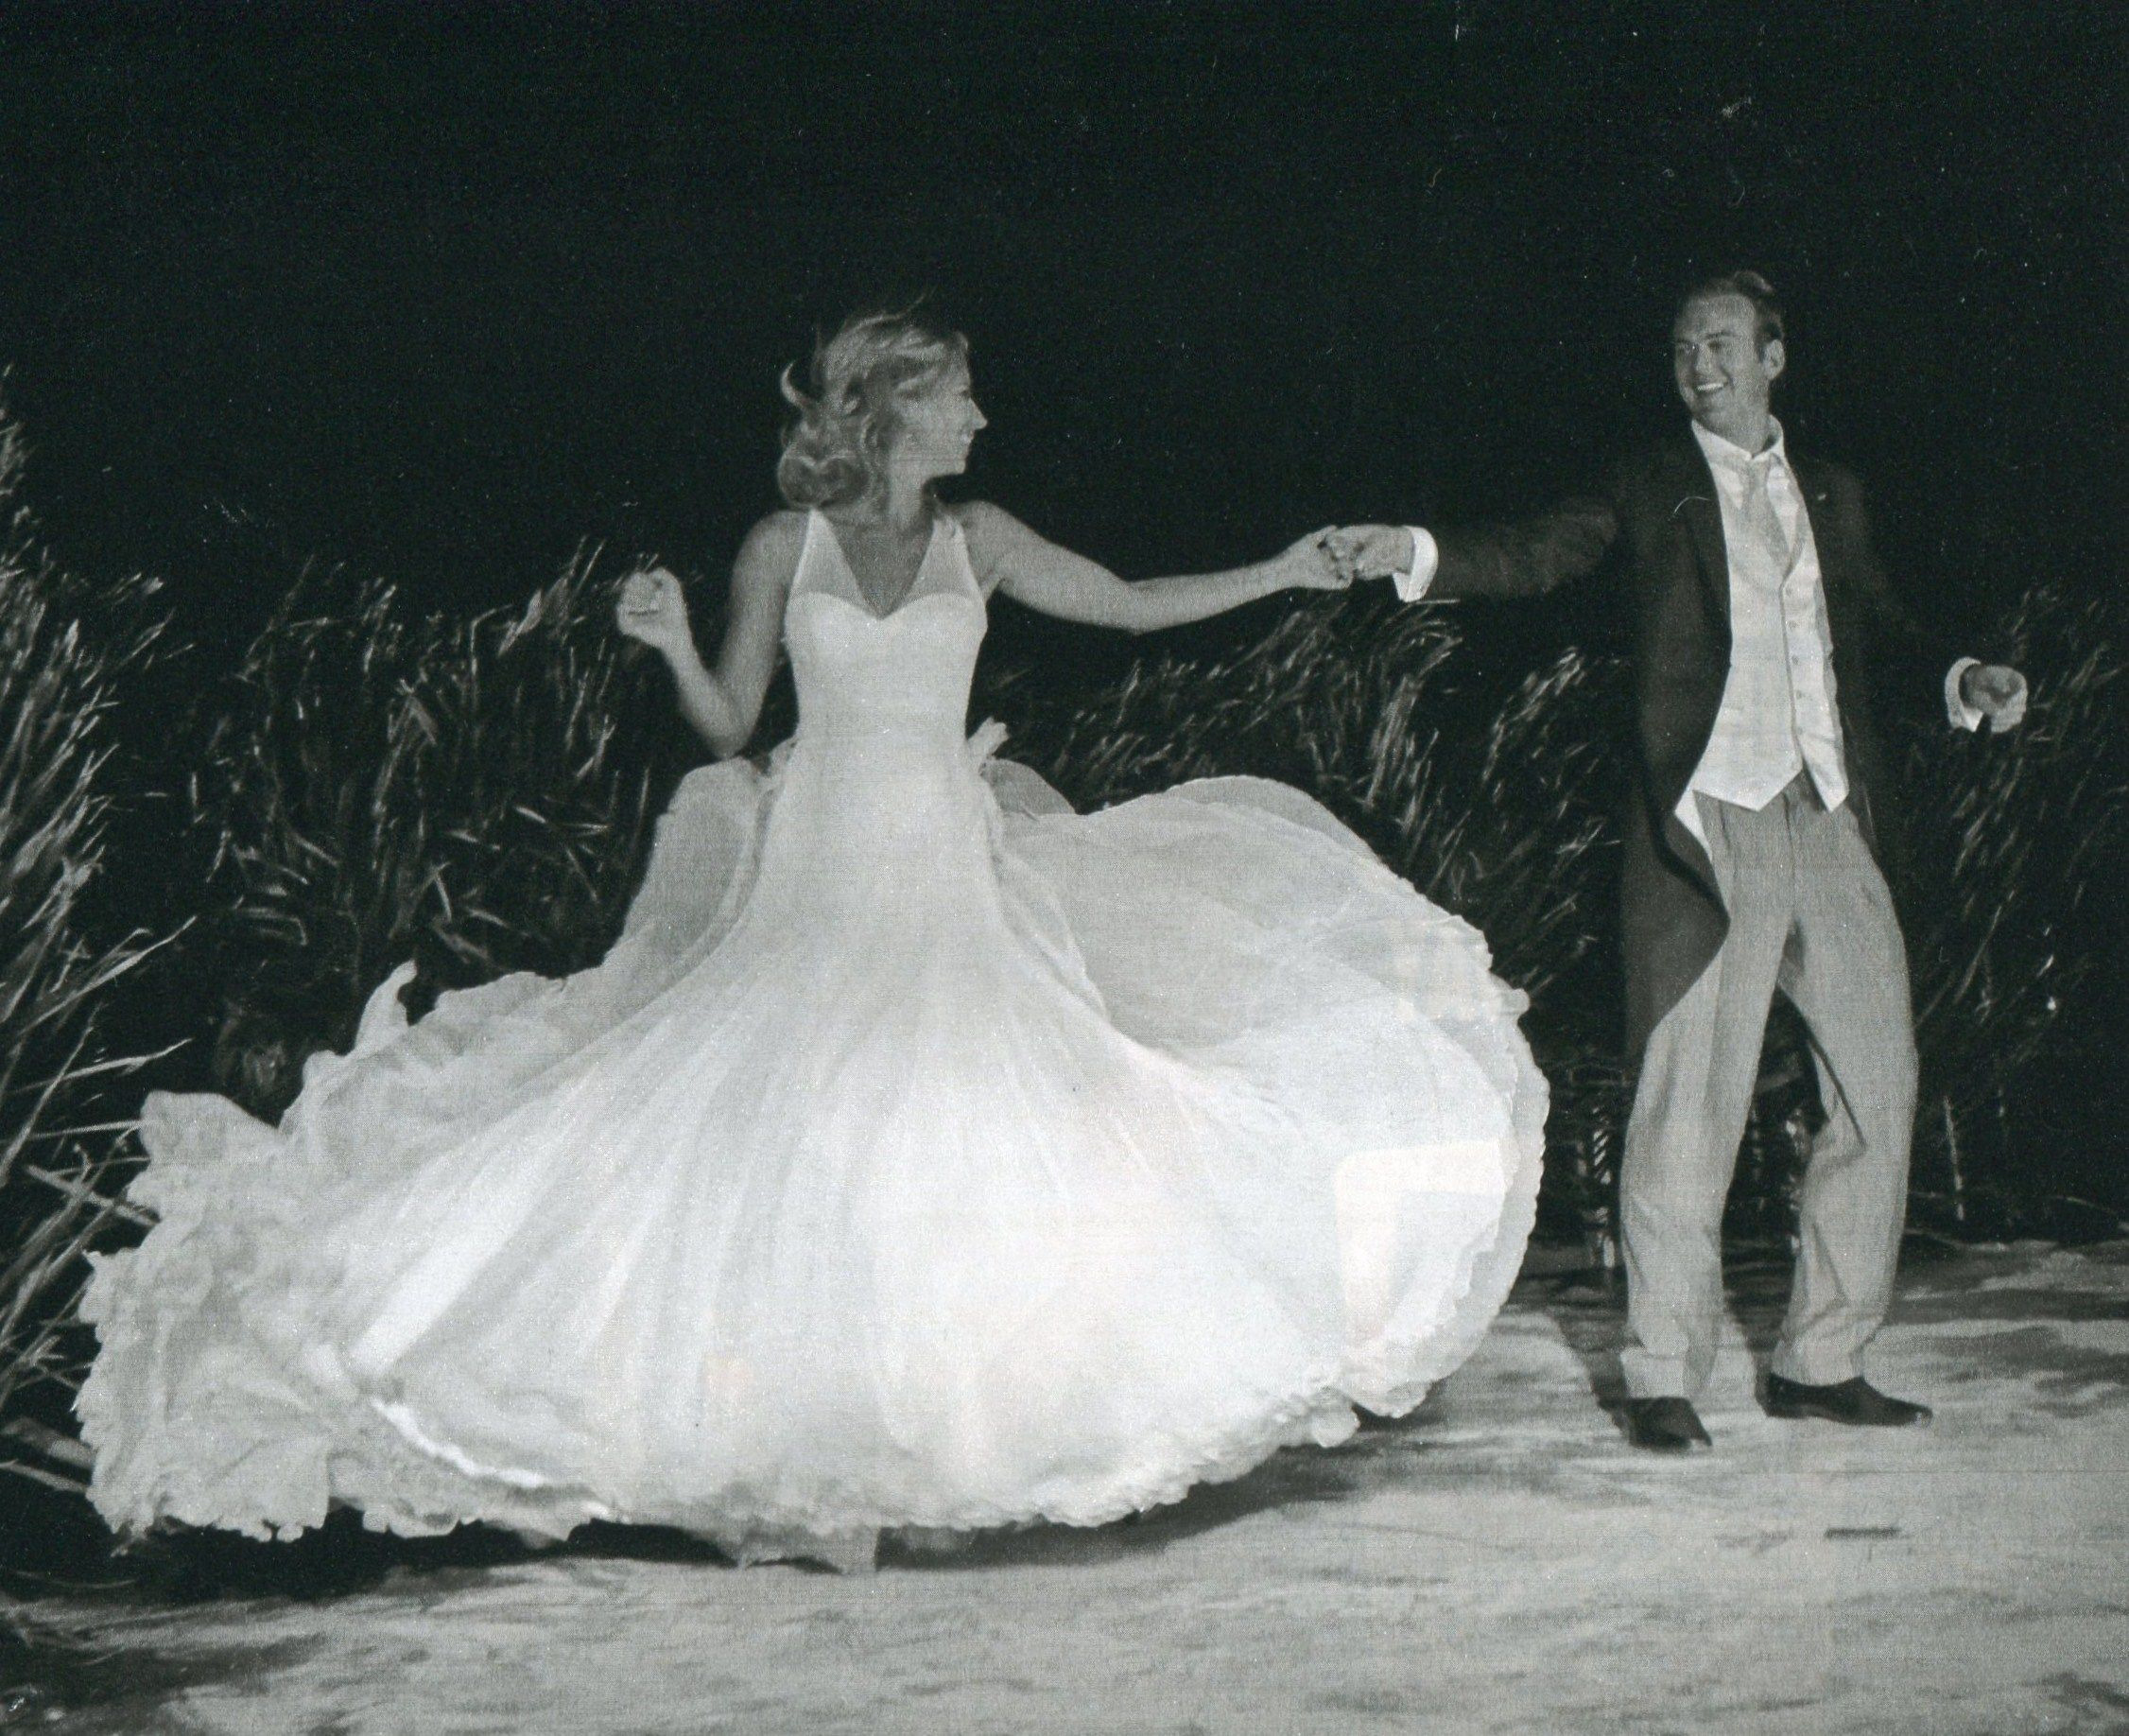 Pin By Barb Smith On Wedding Memories Thru Time Famous Wedding Dresses Hollywood Wedding Celebrity Bride